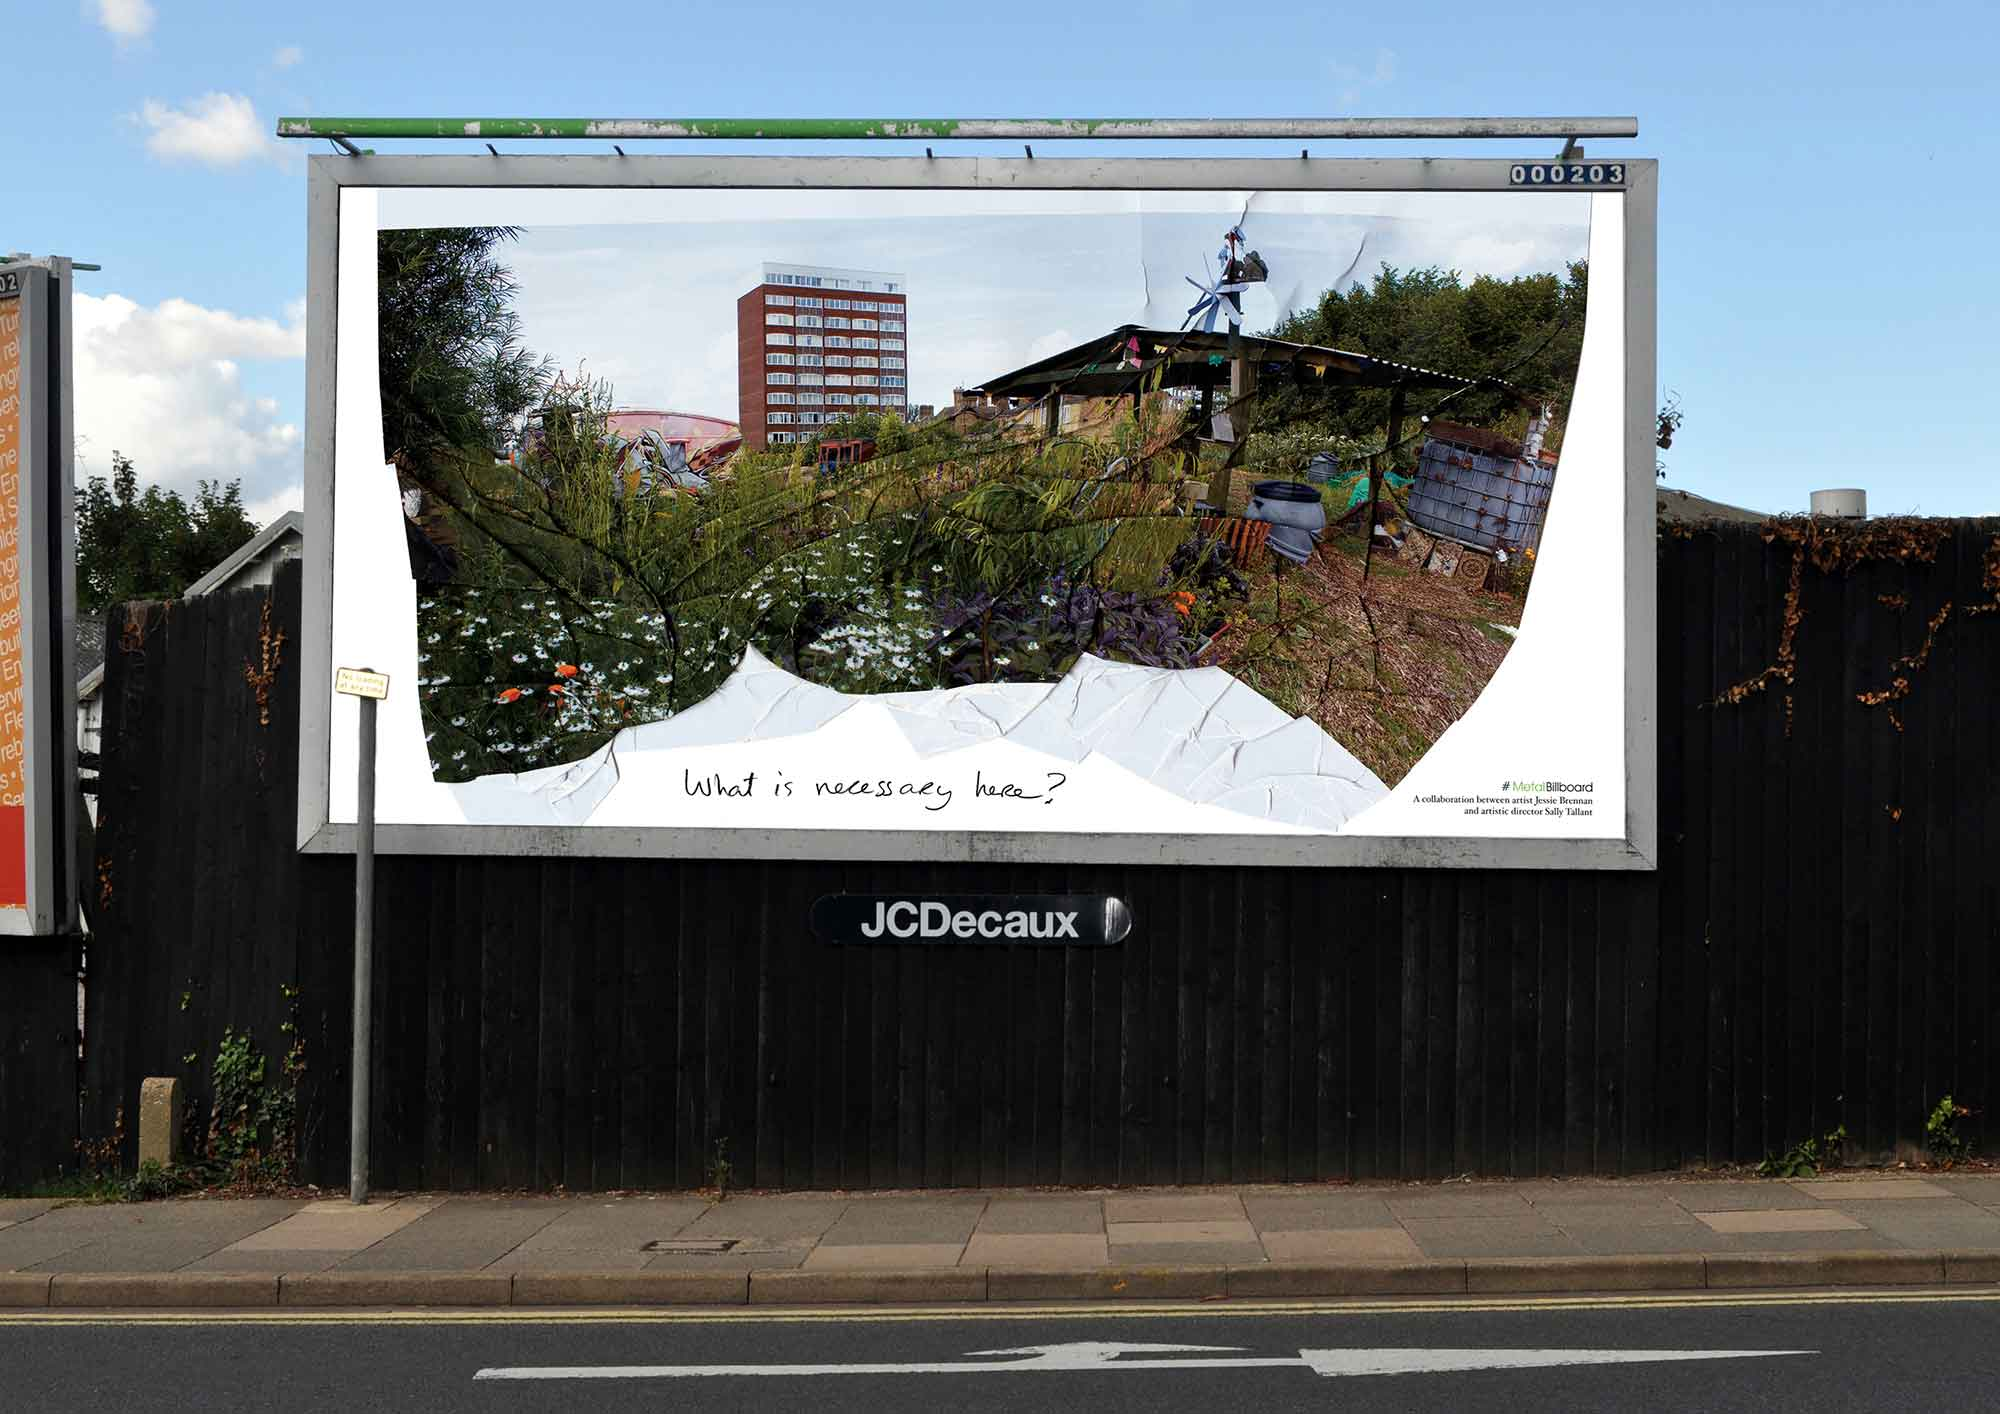 Jessie Brennan, What is necessary here? (2014), photograph on billboard, 304 x 609 cm, situated at Thorpe Road, Peterborough. Installation view. (Photo: Jessie Brennan)